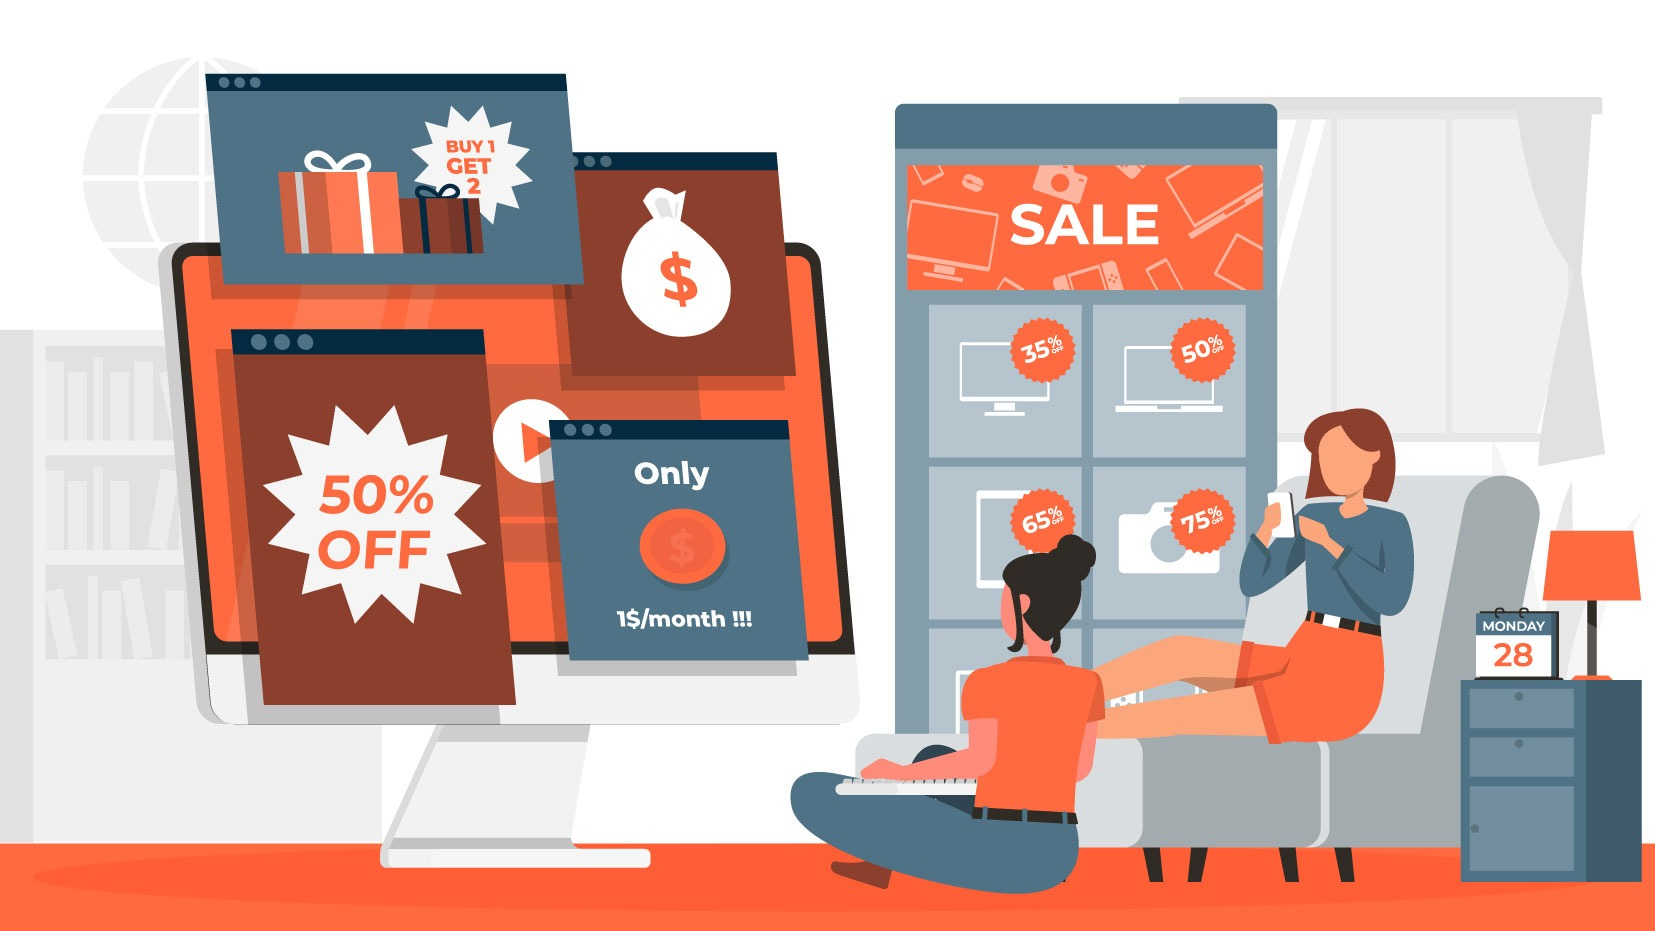 Curating for the Customer: How Retail is Prioritizing the Customer Experience